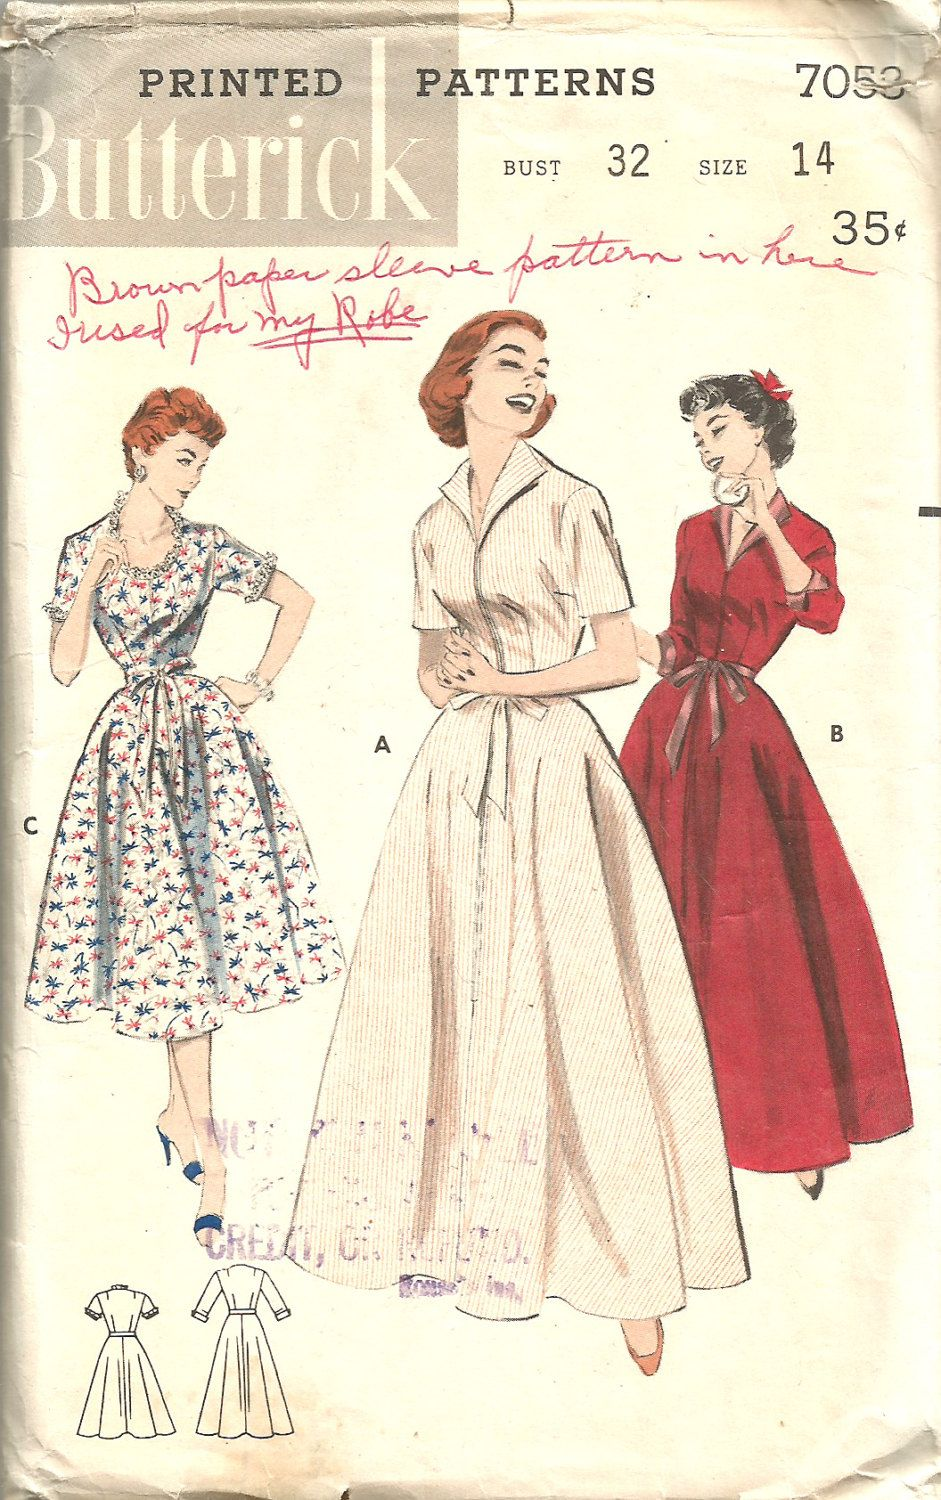 f2bbb72746 Butterick 7053 (1954). Butterick 7053 (1954) Vintage Sewing Patterns